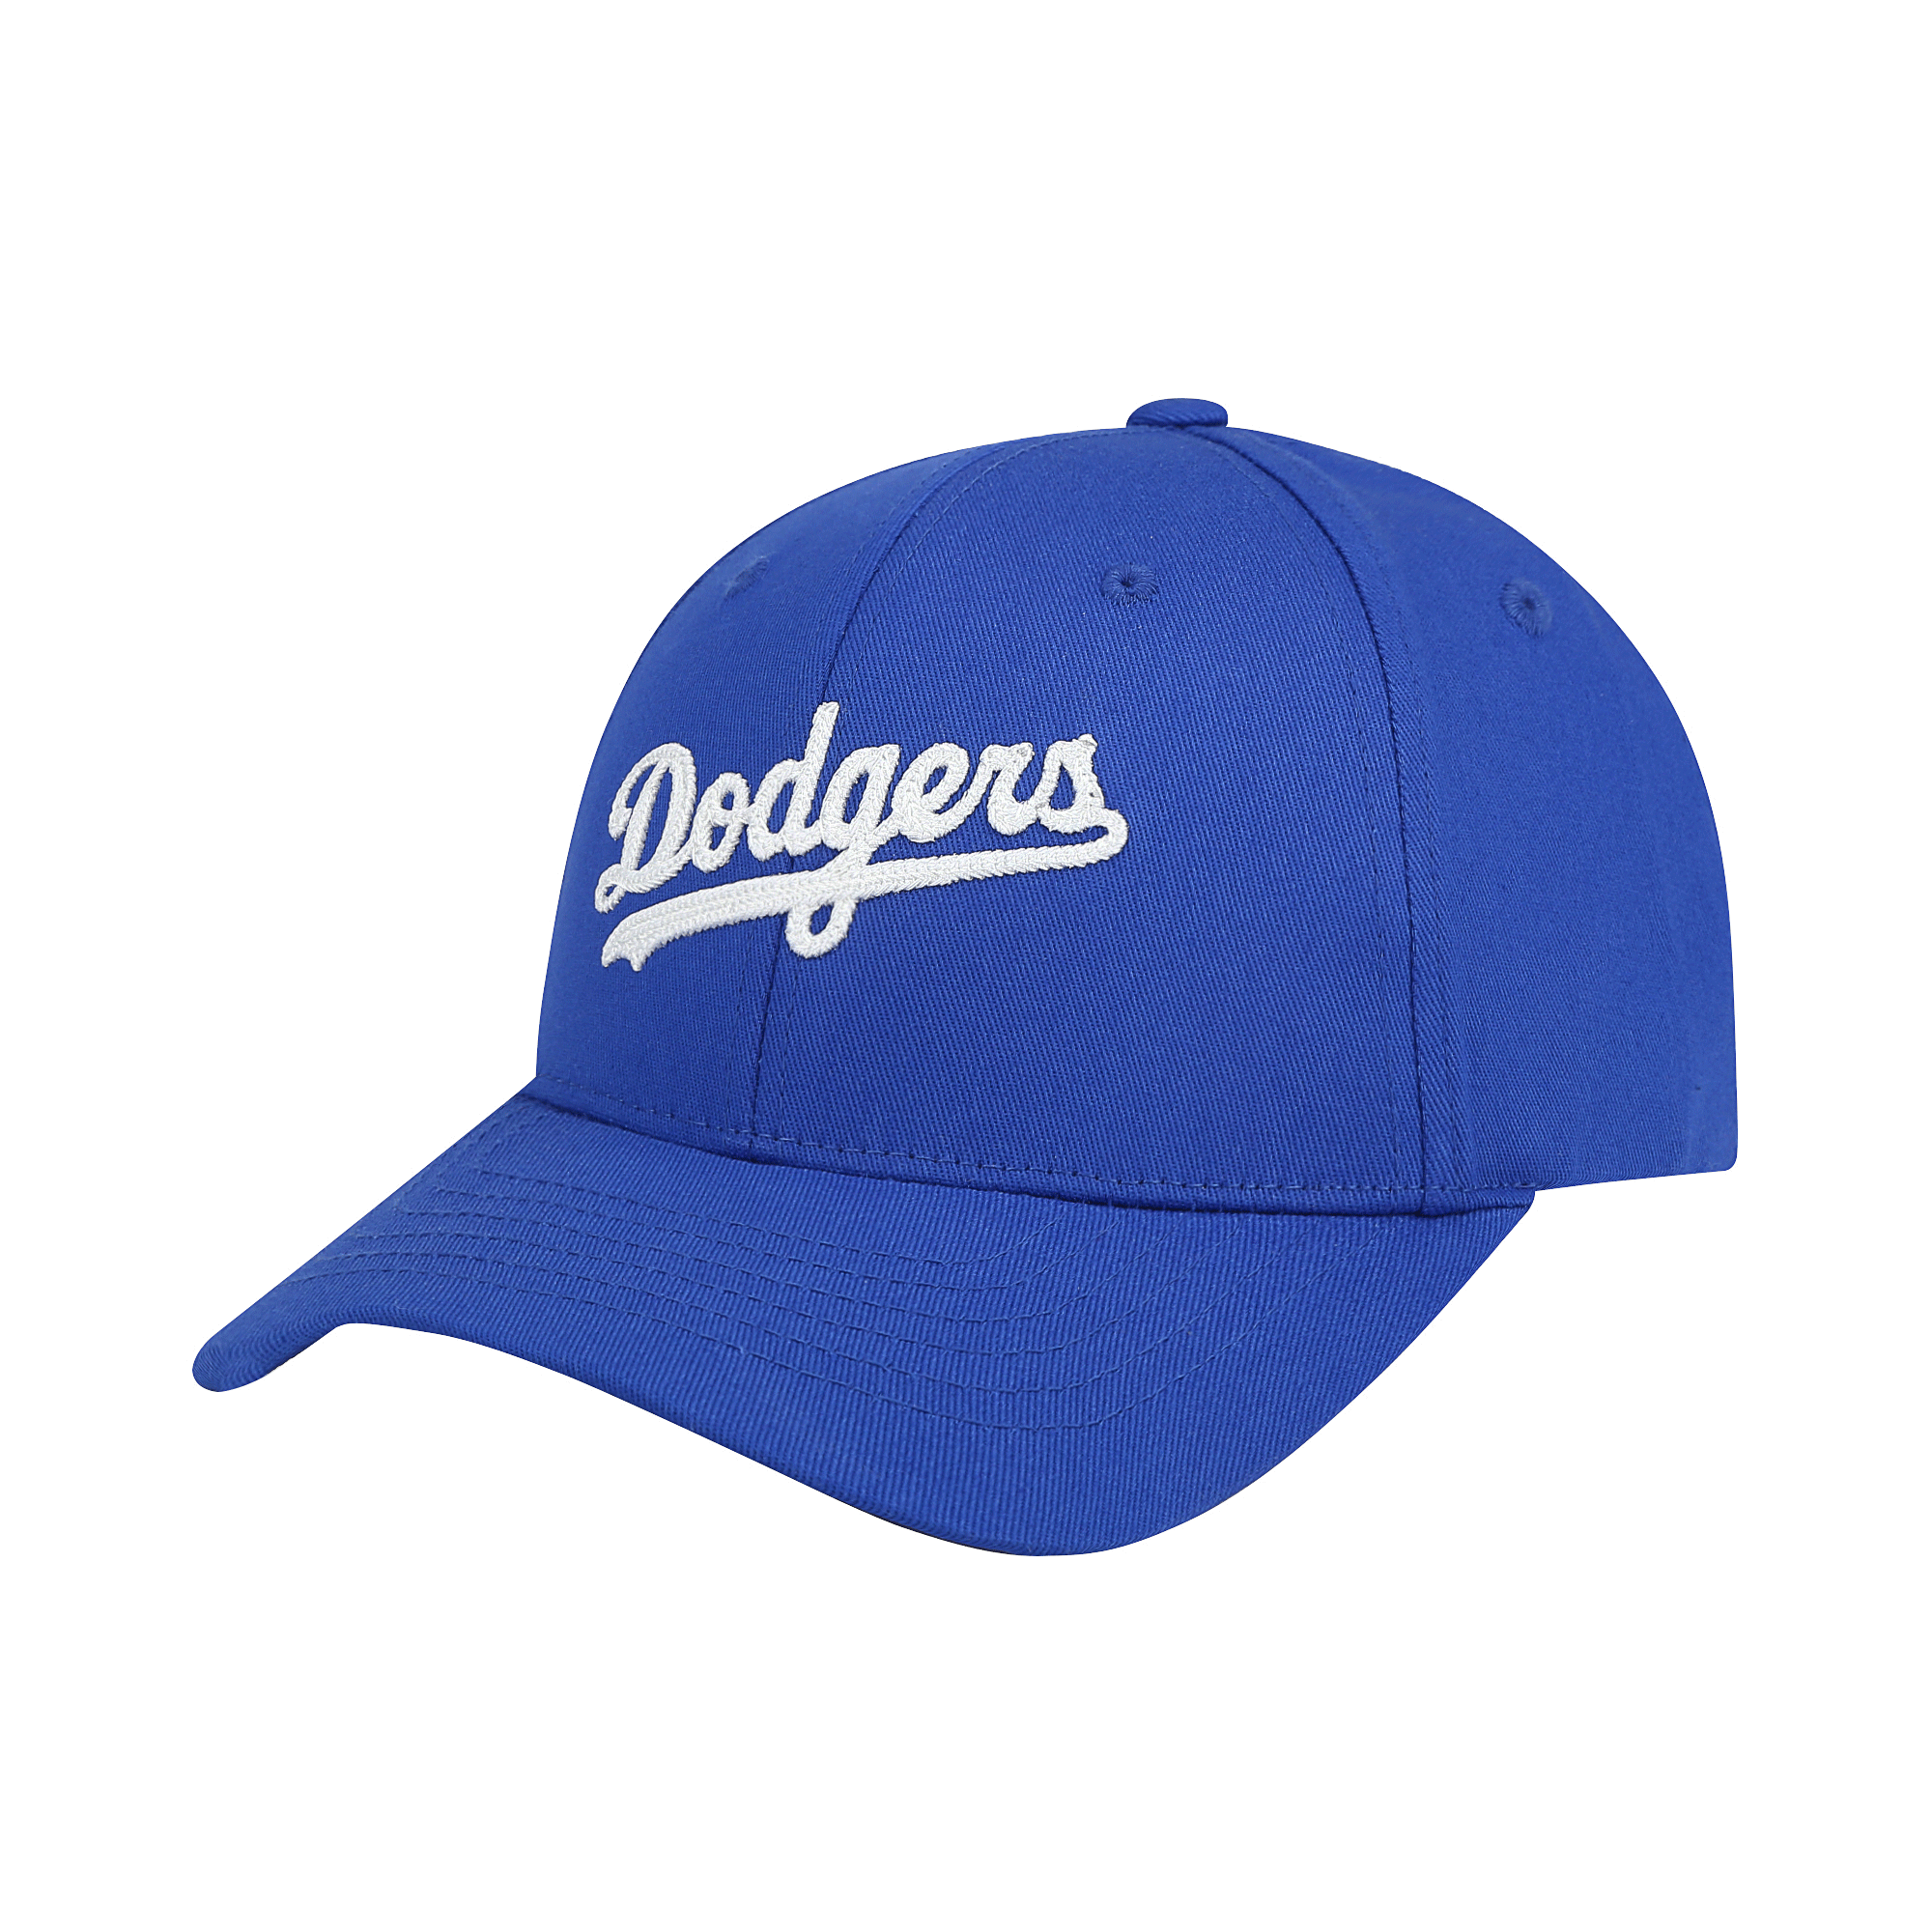 LA DODGERS CHAIN EMBROIDERY CURSIVE ADJUSTABLE CAP